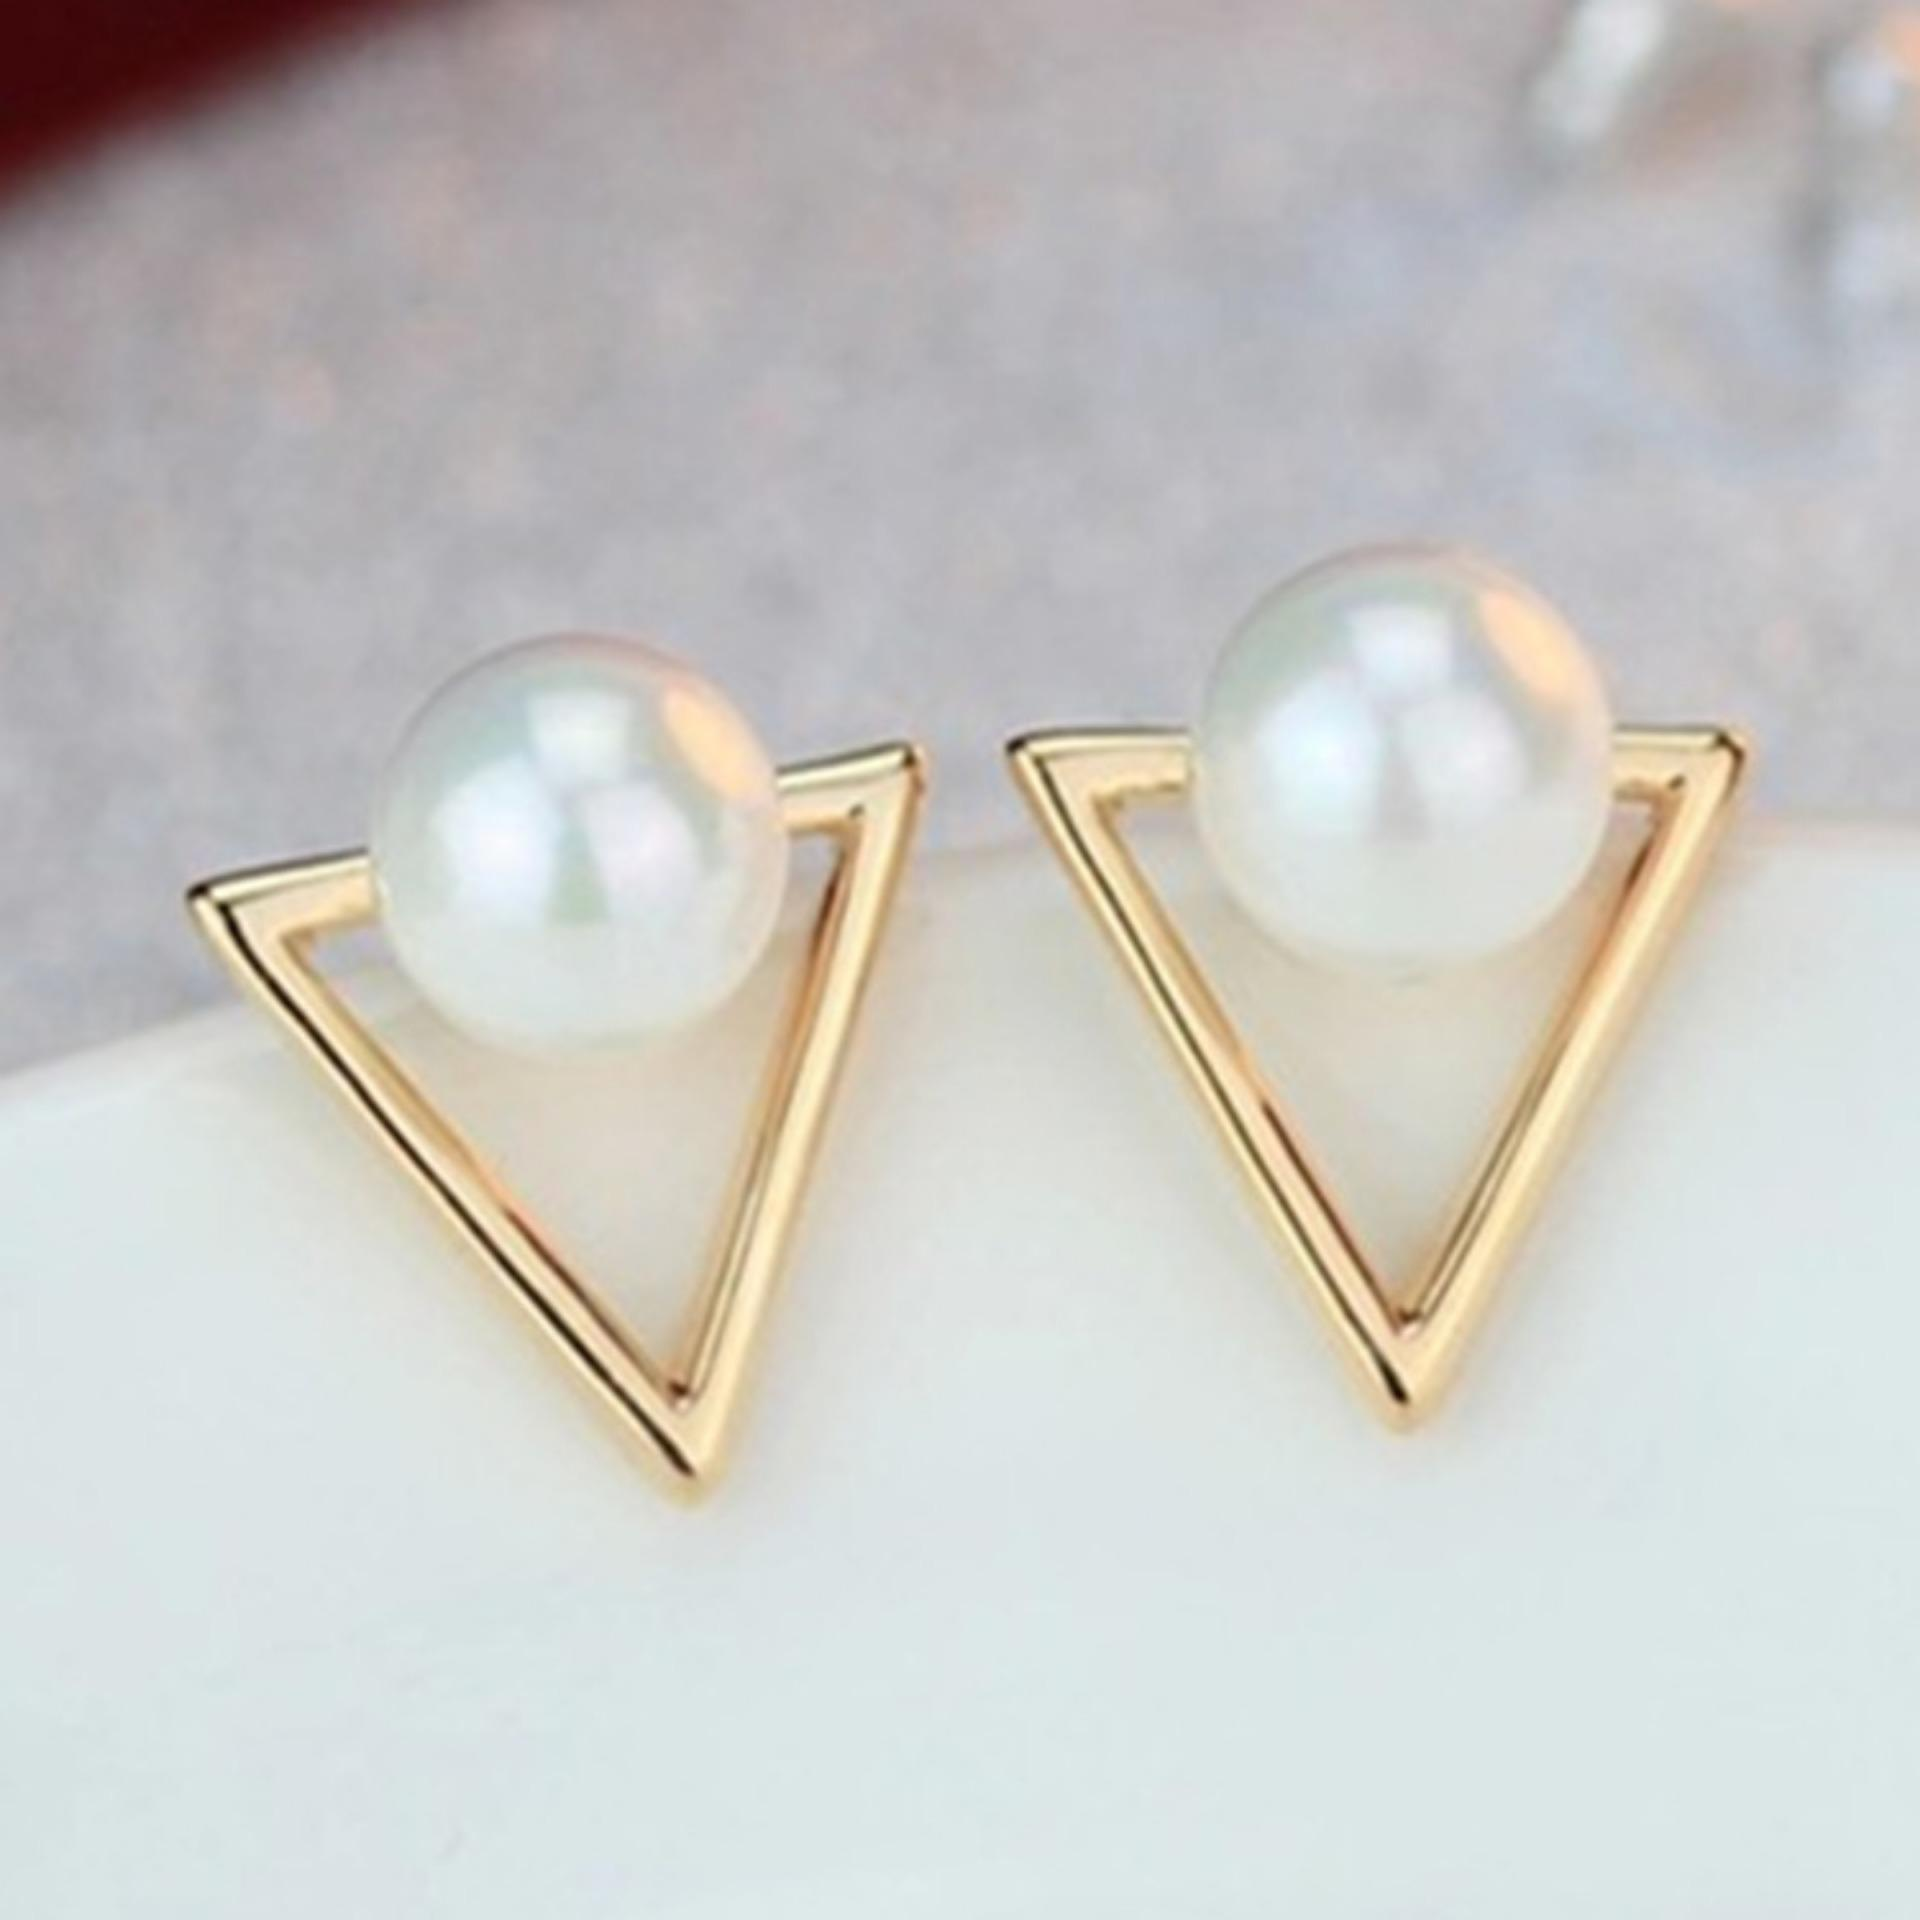 1 Pasang Anting Perempuan Mutiara - Fashion Korea - Gold